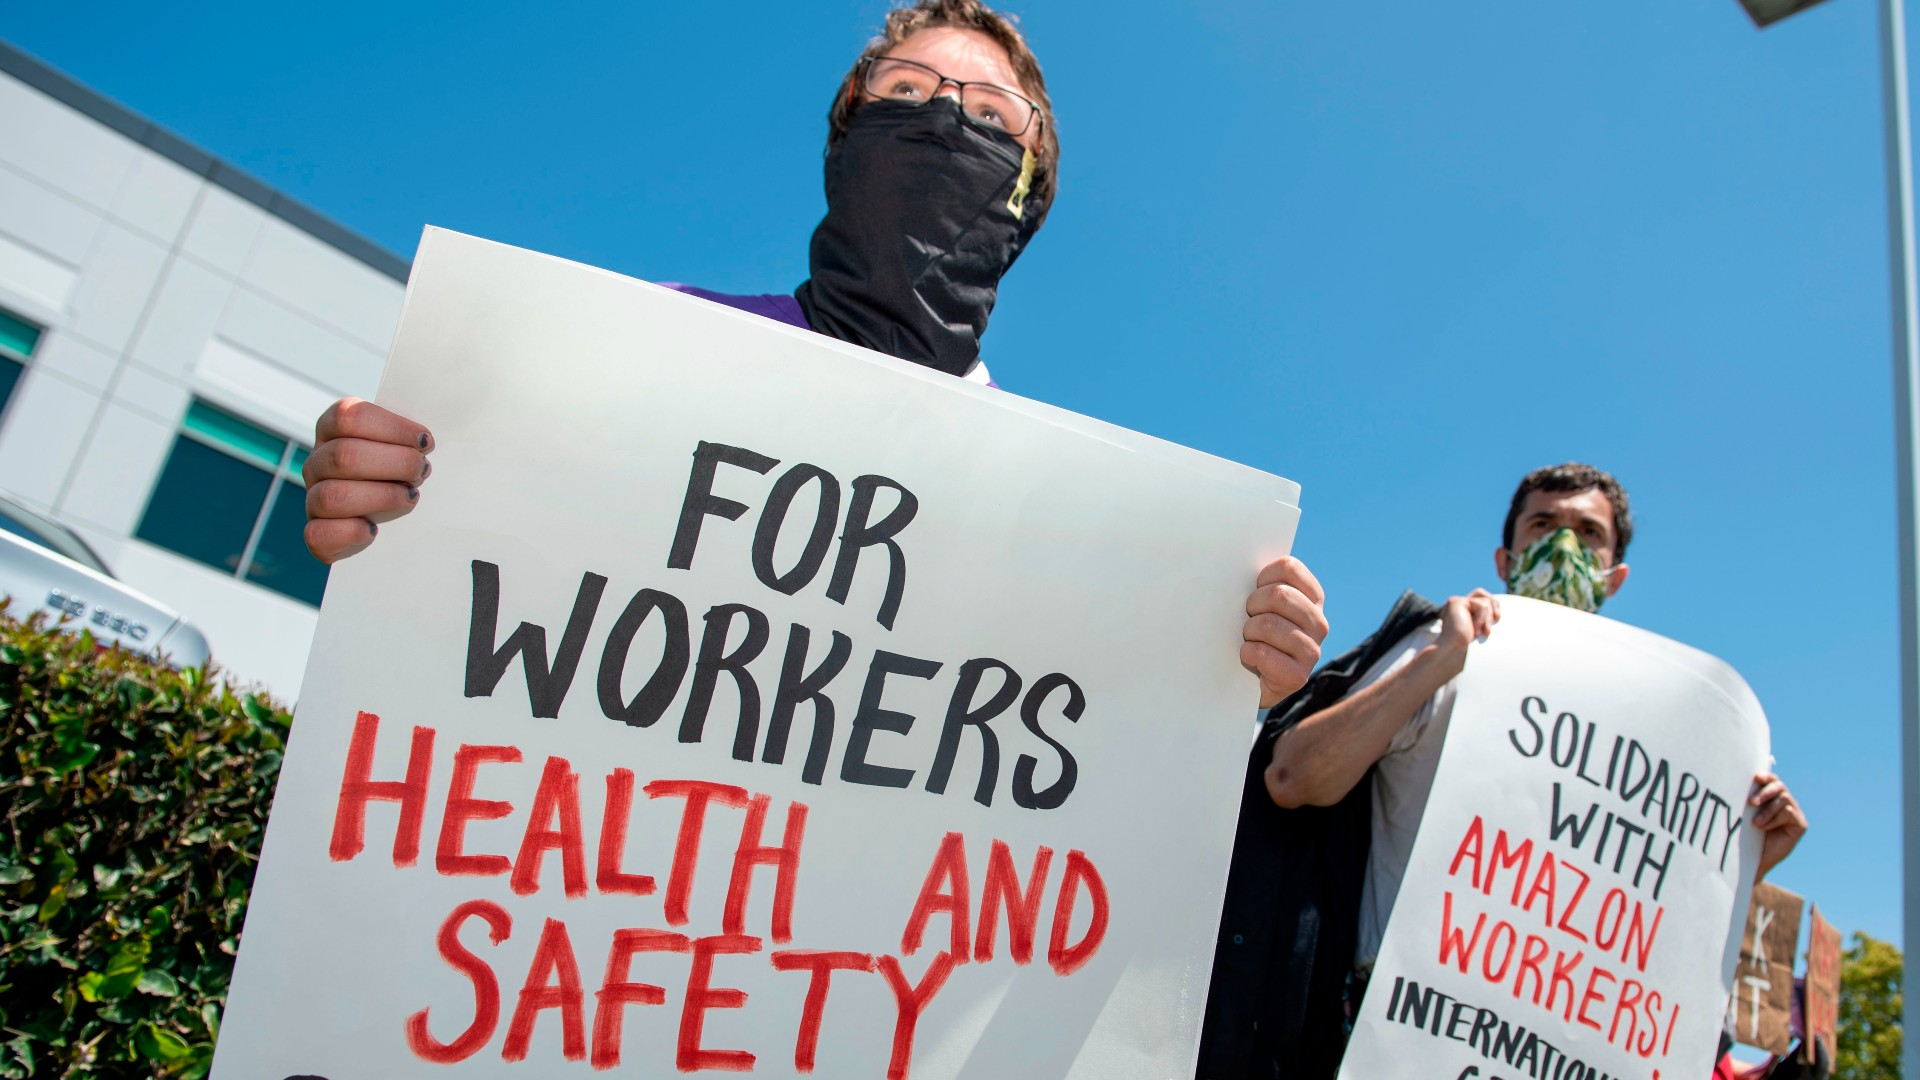 Workers protest against the failure from their employers to provide adequate protections in the workplace of the Amazon delivery hub on National May Day Walkout/Sickout by workers at Amazon, Whole Foods, Innstacart and Shipt amid the Covid-19 pandemic on May 1, 2020, in Hawthorne, California. (VALERIE MACON/AFP via Getty Images)